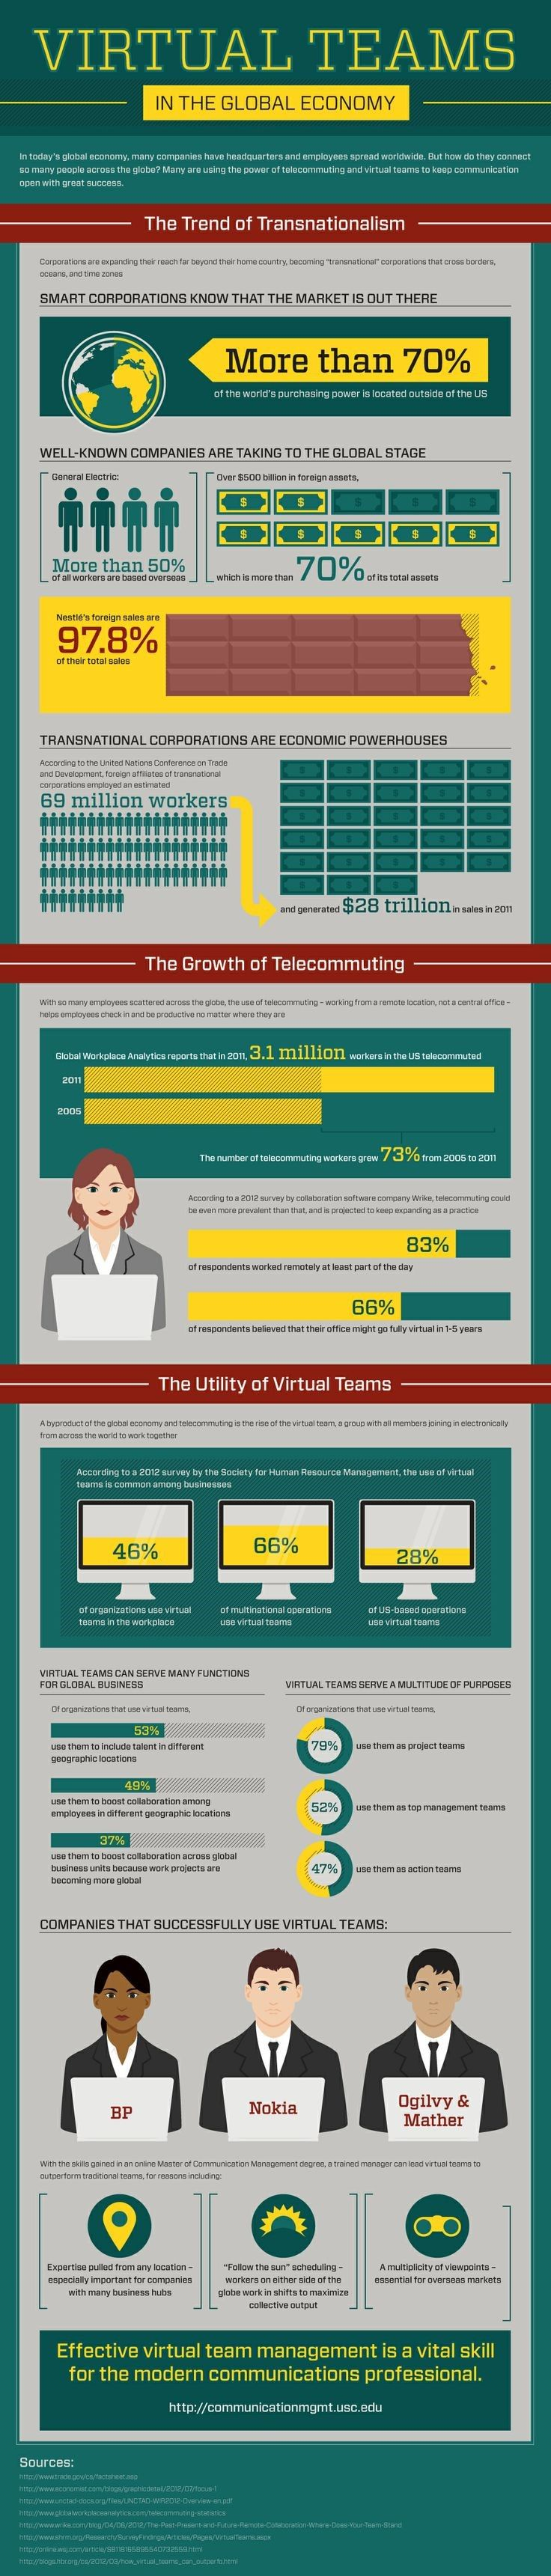 best images about virtual teams smartphone 46% of organizations use virtual teams in the workplace sg